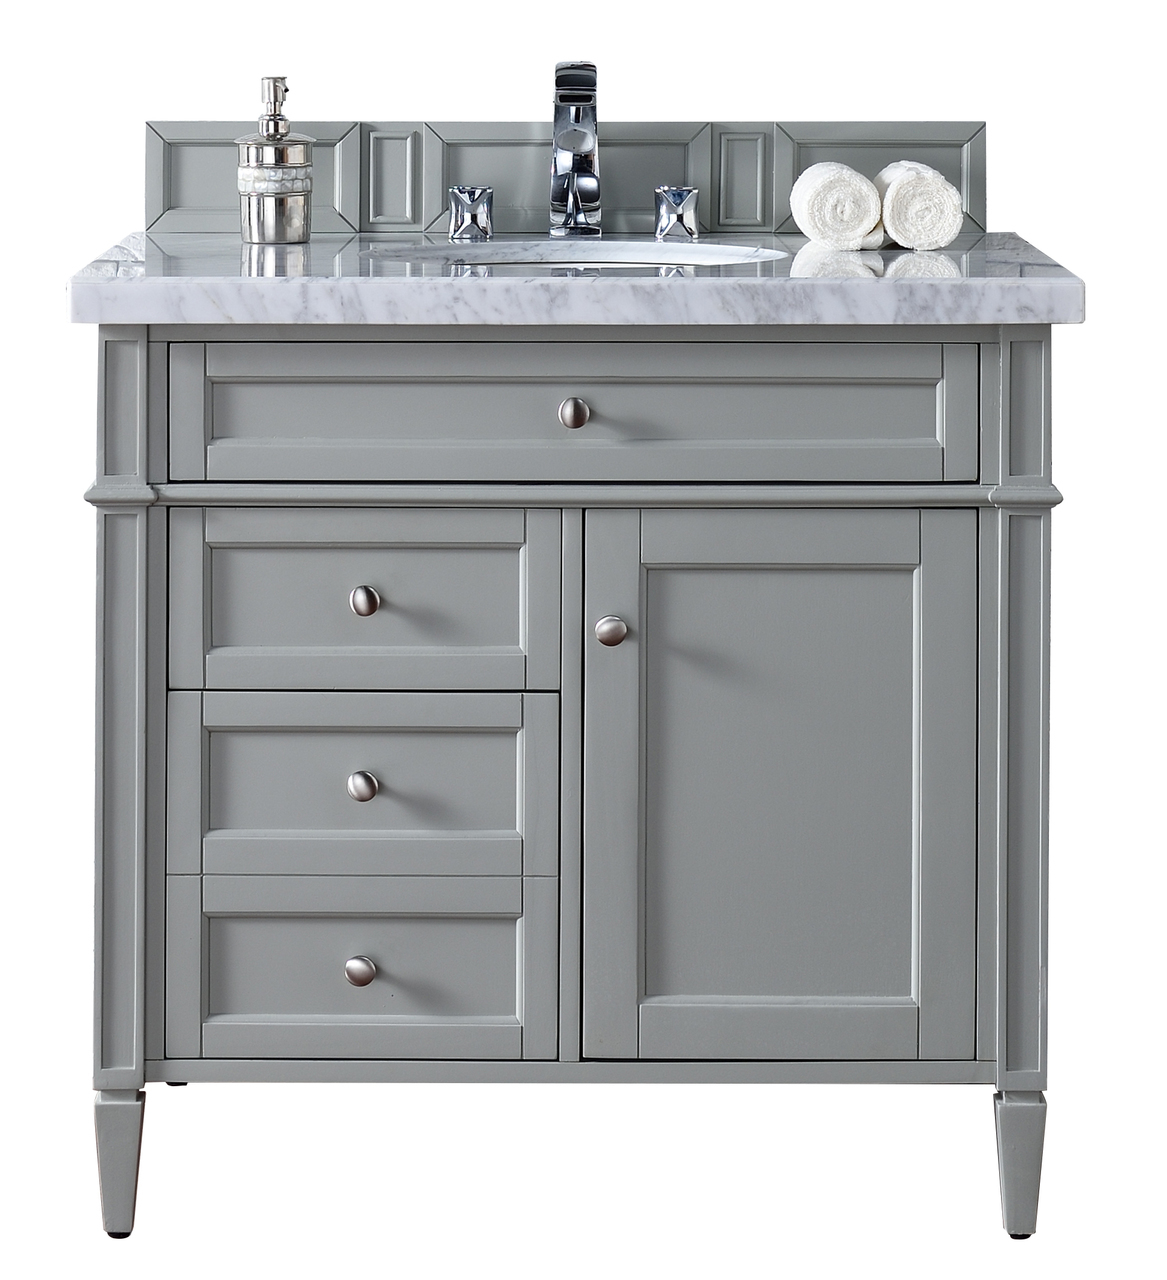 james martin brittany collection 36 single vanity urban gray. Black Bedroom Furniture Sets. Home Design Ideas